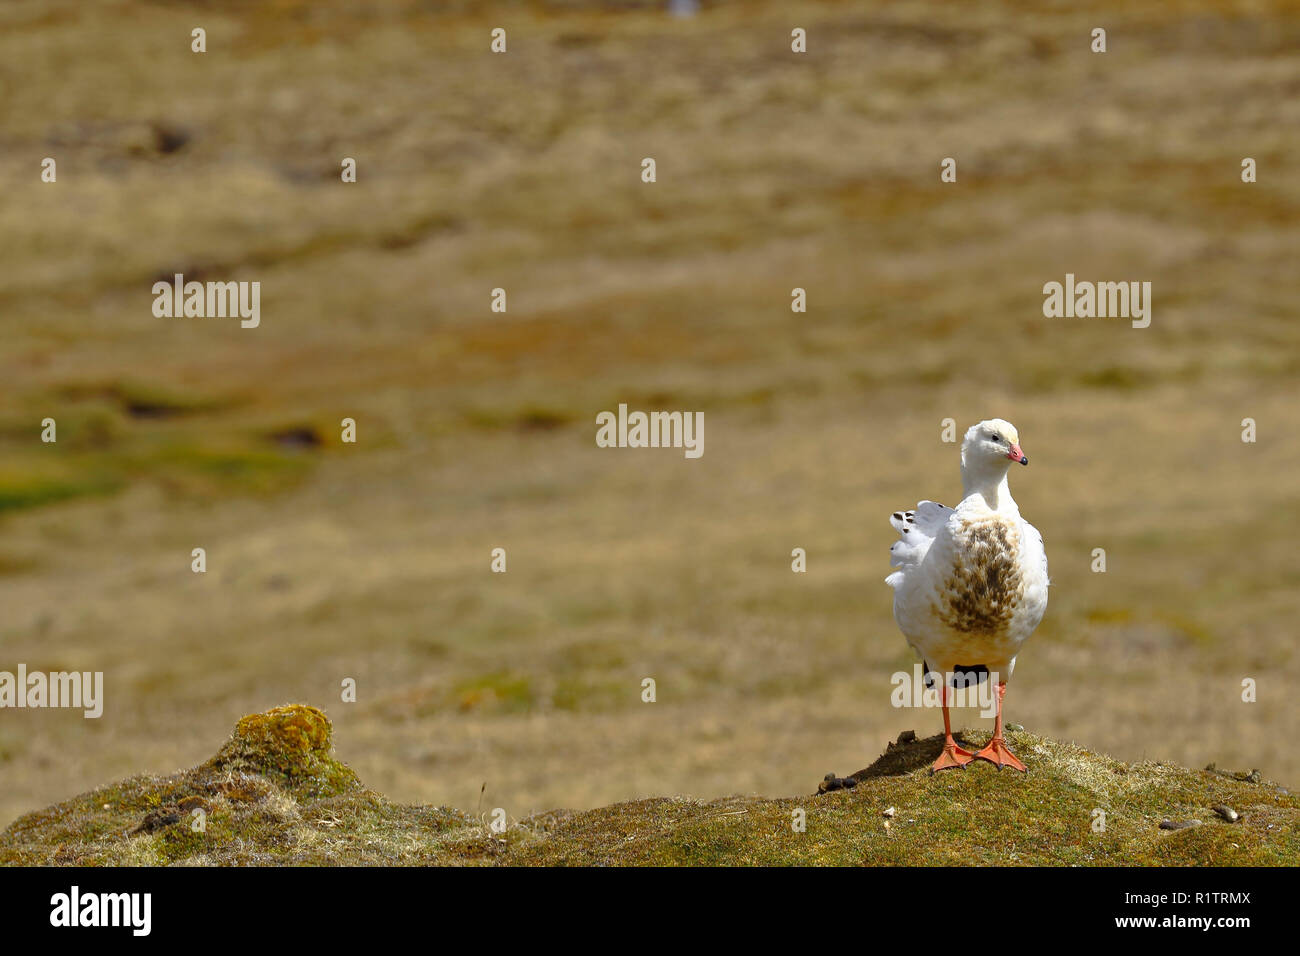 Andean goose (Chloephaga melanoptera) perched on the grassland in its natural environment in the puna. - Stock Image